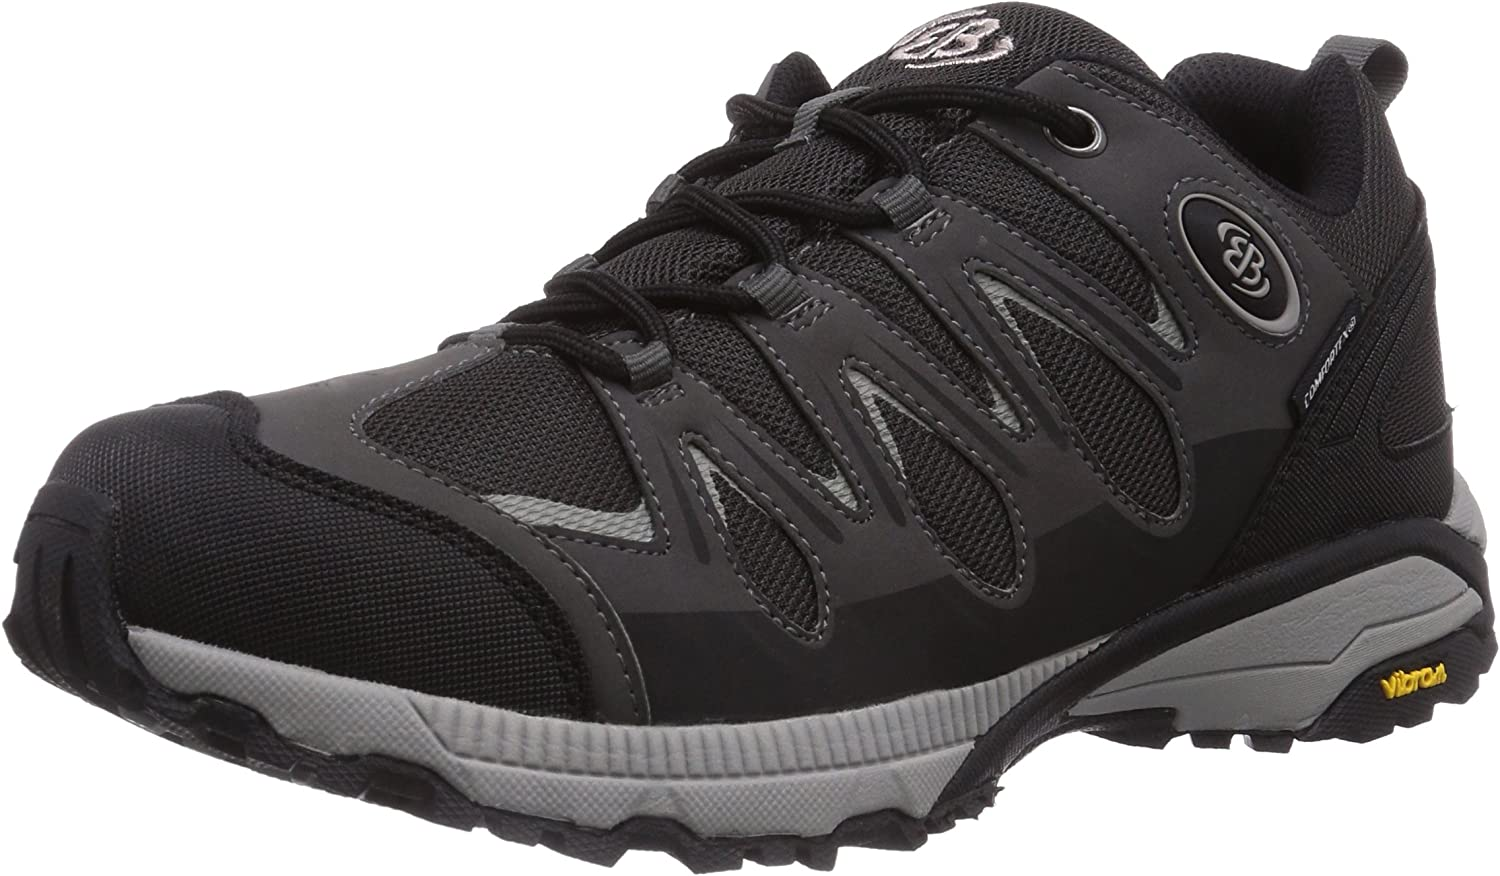 Bruetting Men's Expedition Nordic Walking shoes